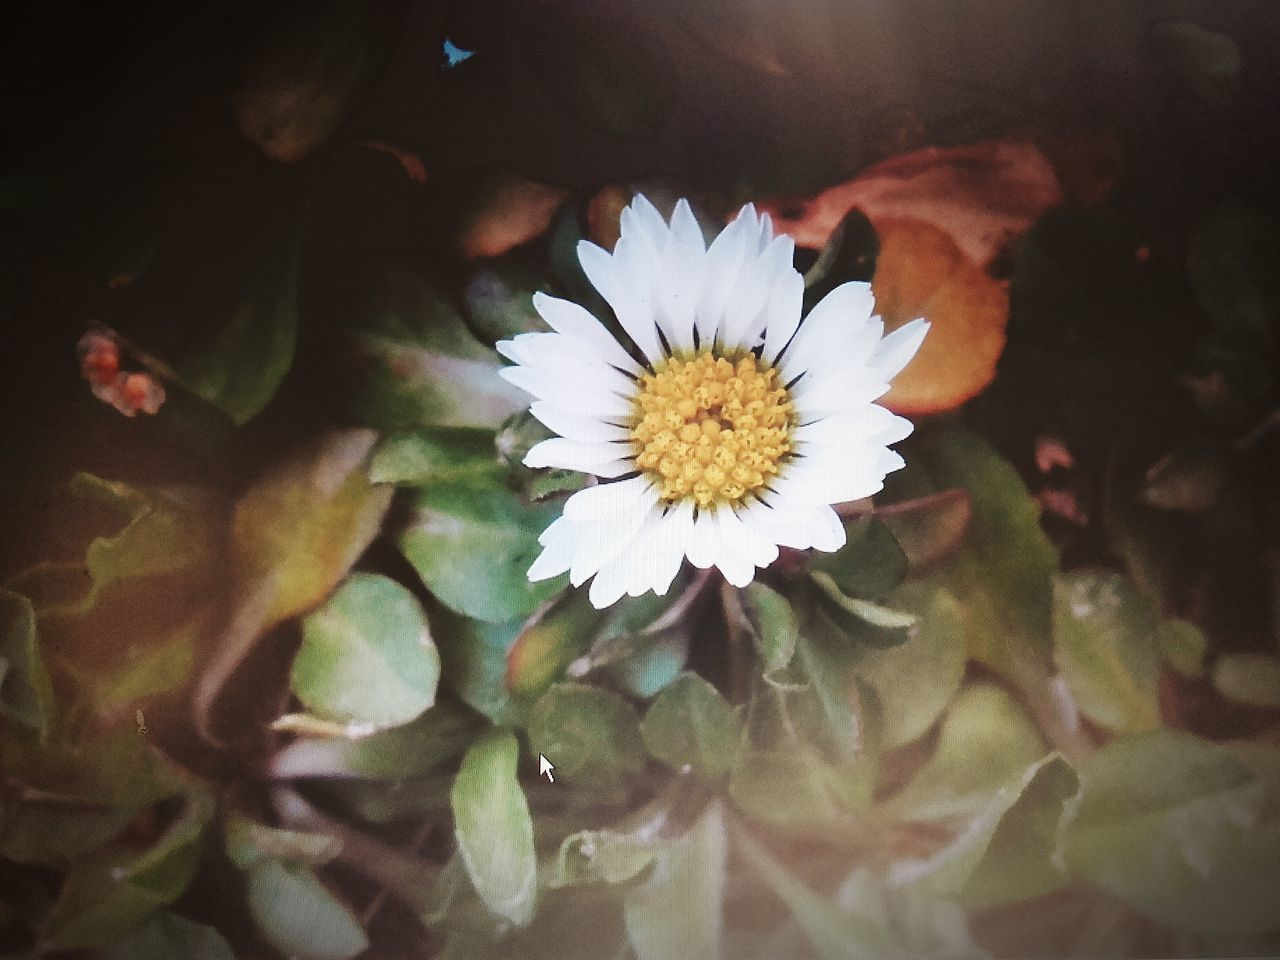 flower, petal, beauty in nature, fragility, nature, freshness, flower head, growth, leaf, close-up, plant, blooming, yellow, no people, outdoors, day